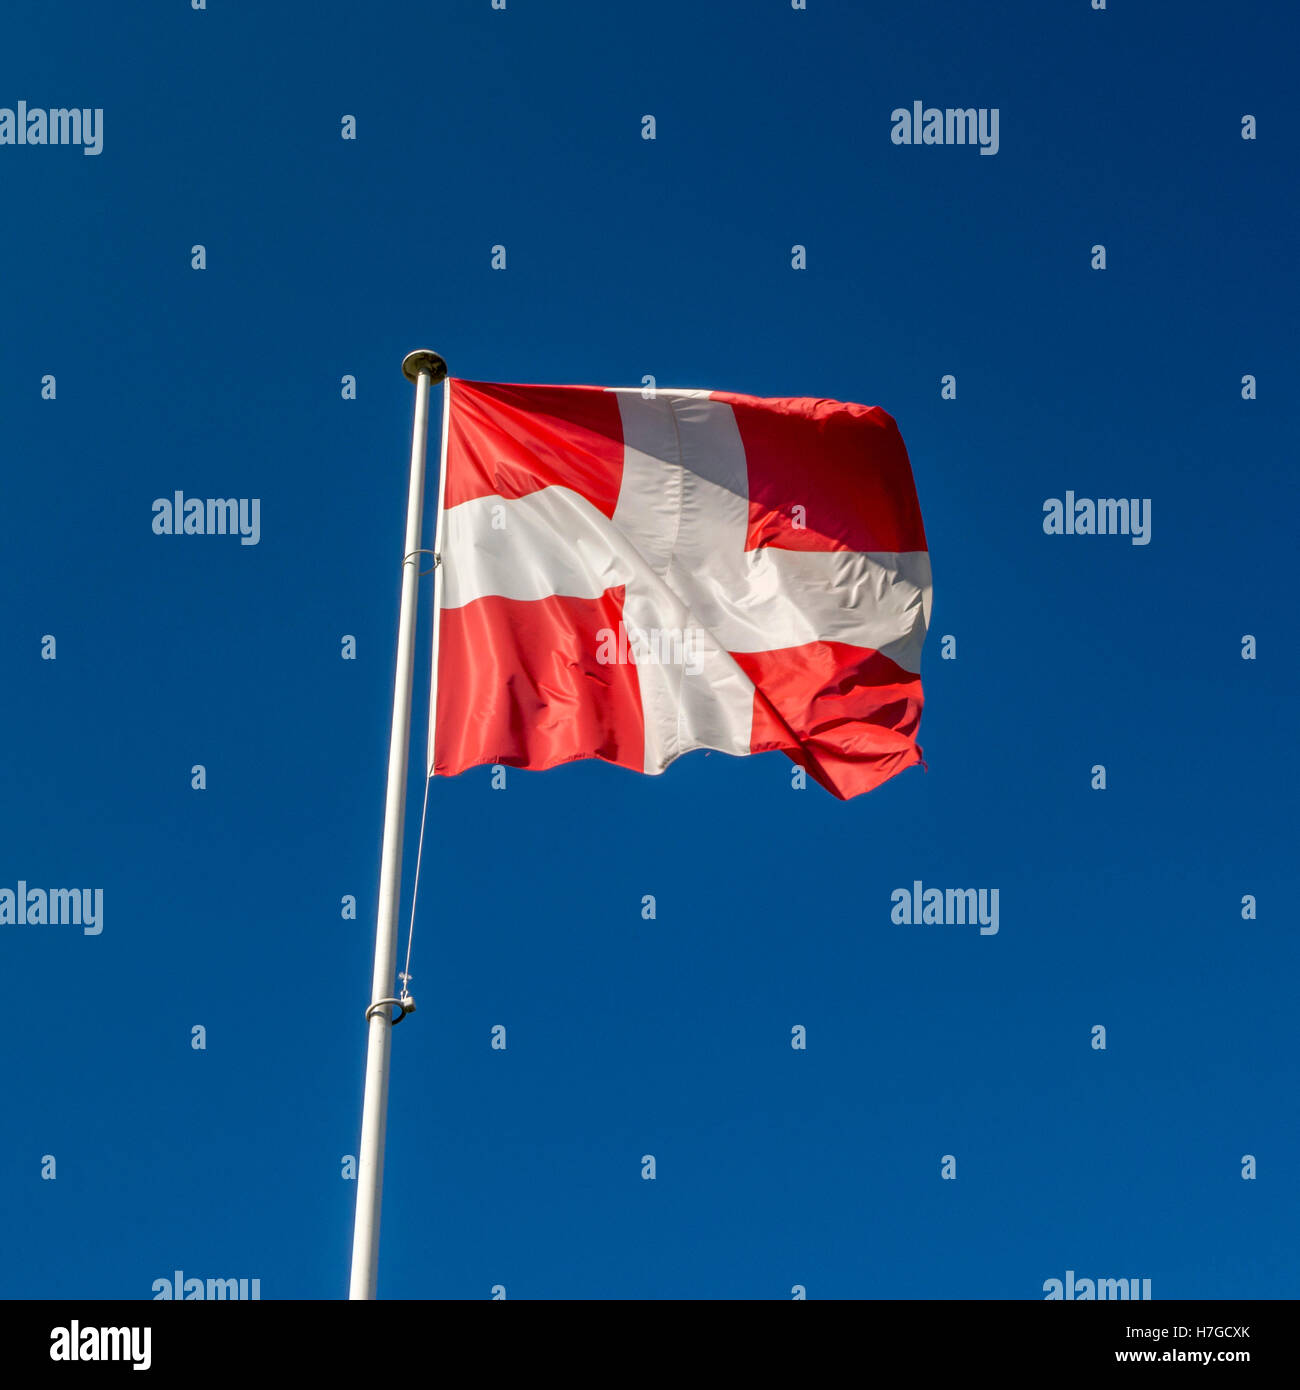 The read and white flag of Savoie flag, Annecy, France - Stock Image